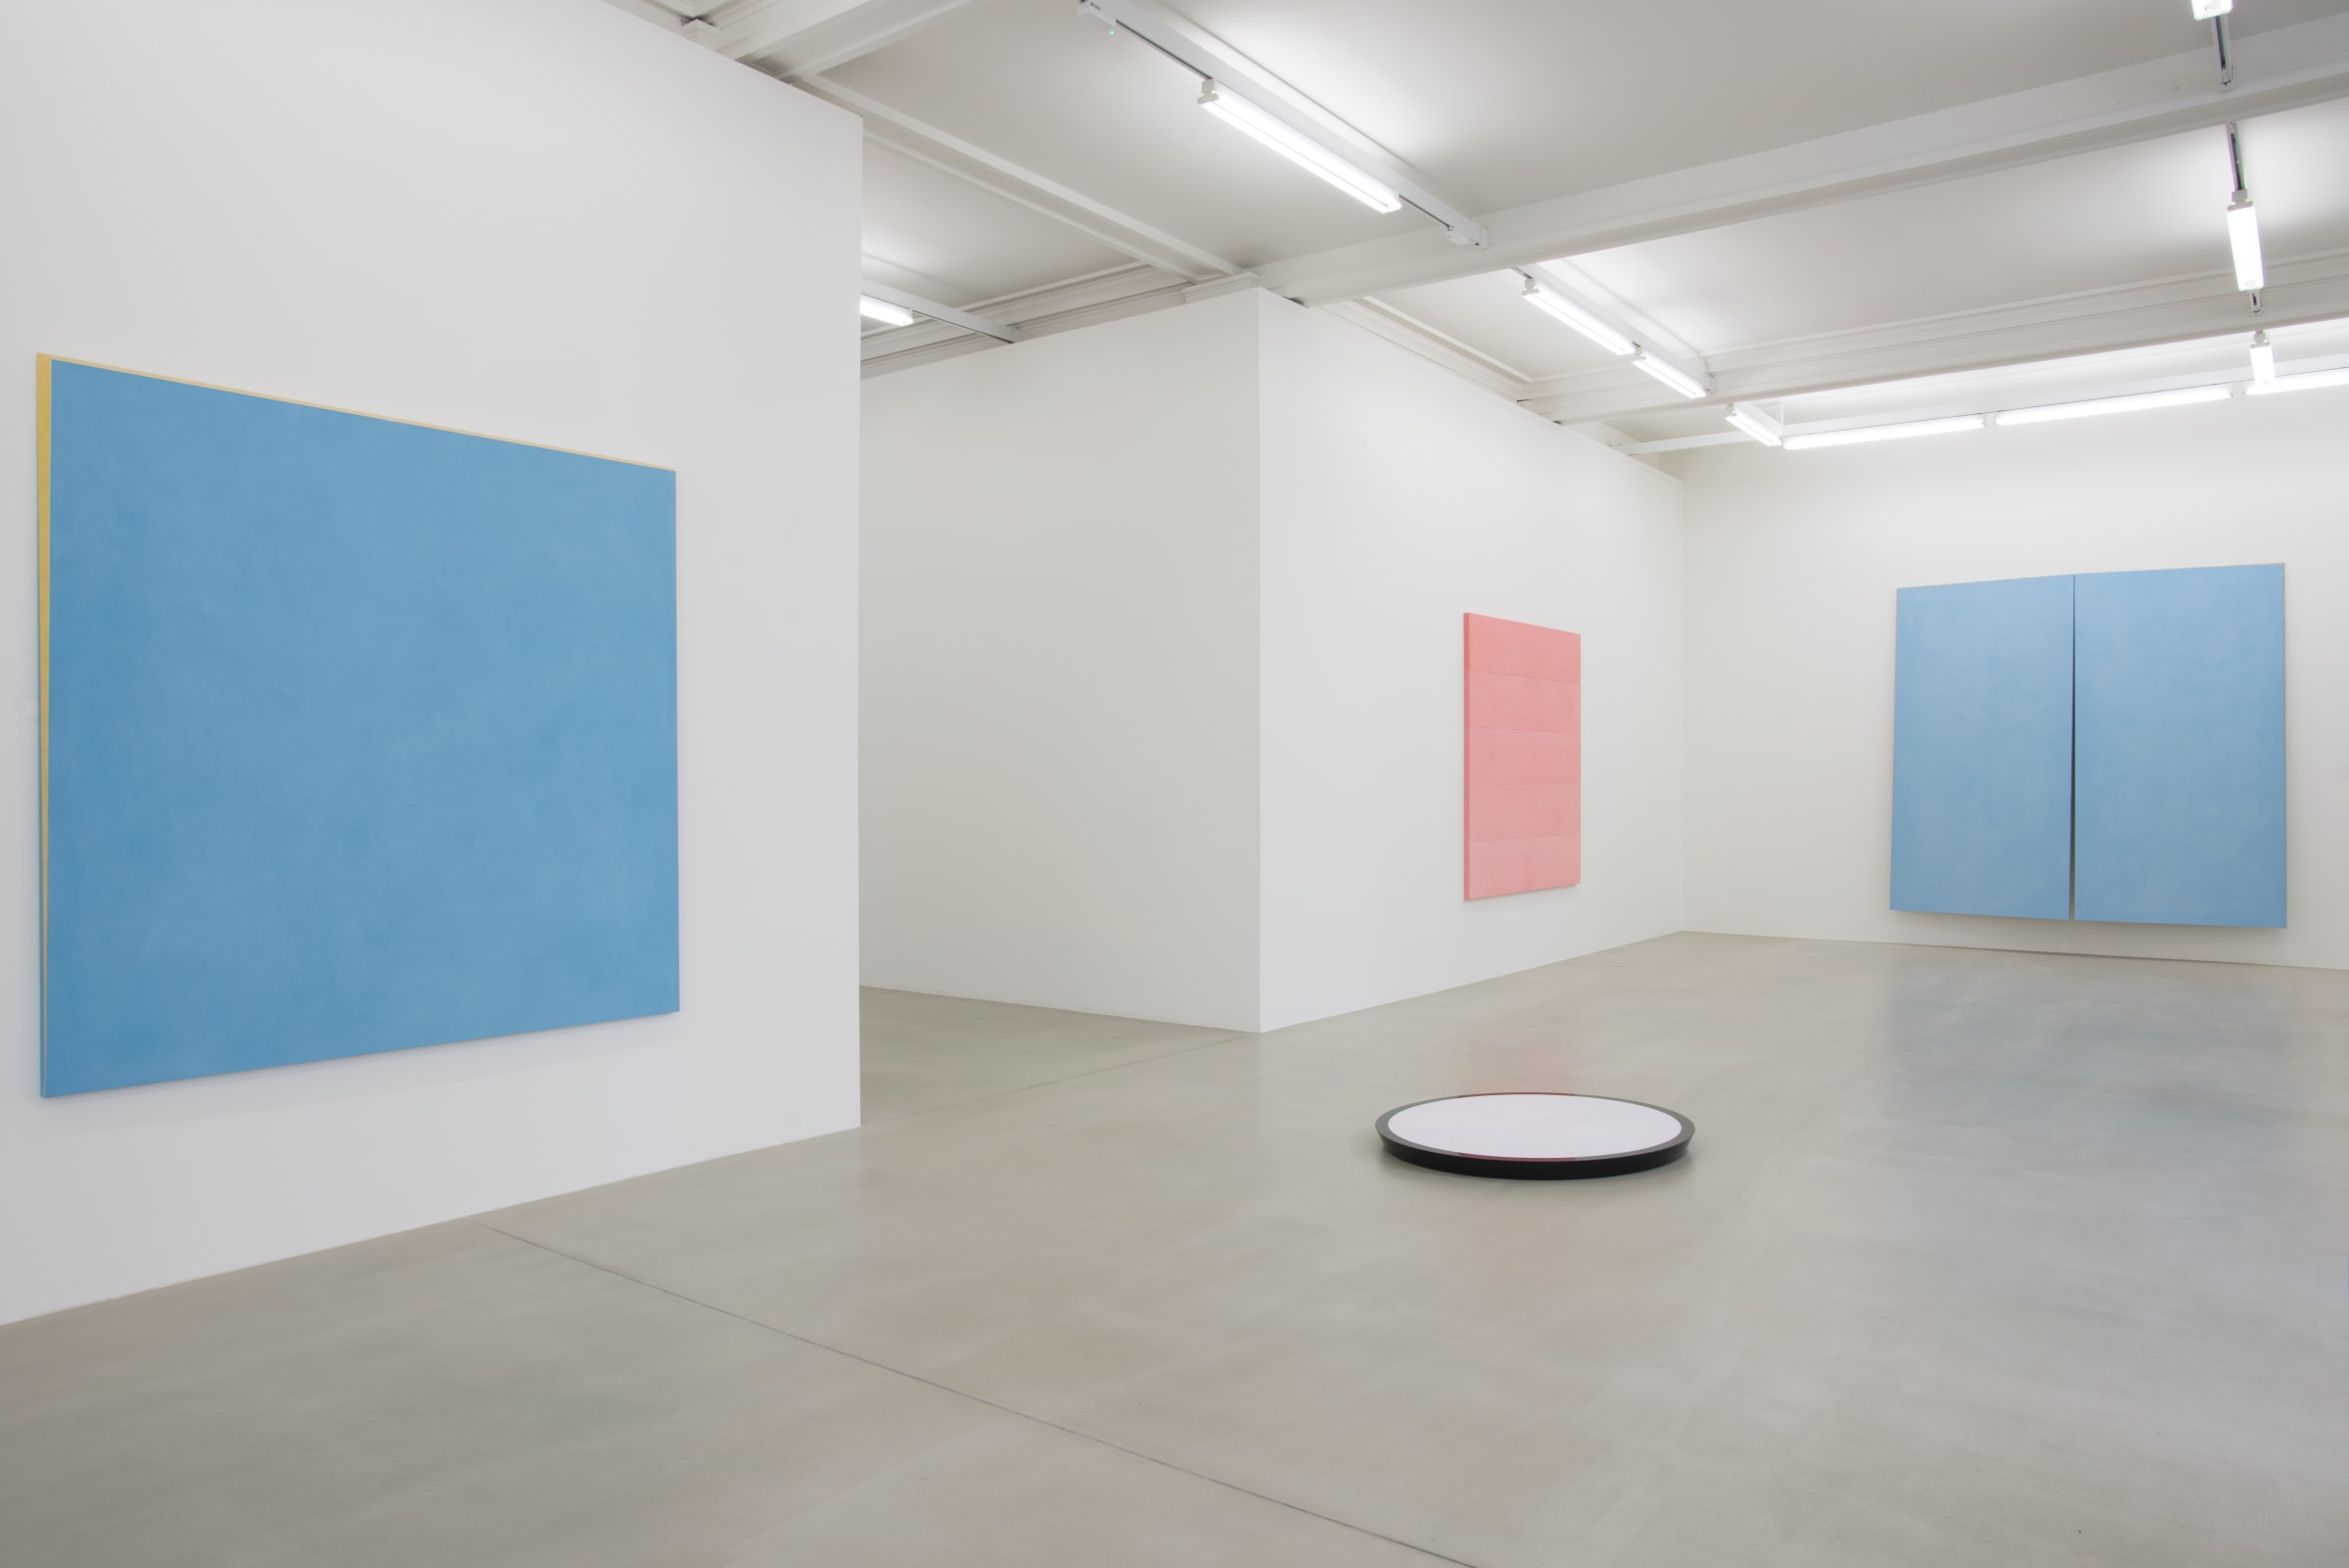 In a large white space with grey stone floors, a white circular sculpture with black trimming lies on the floor. On the walls surrounding it hang a light blue painting with gold trim, a light pink painting, and a larger blue painting, bisected.